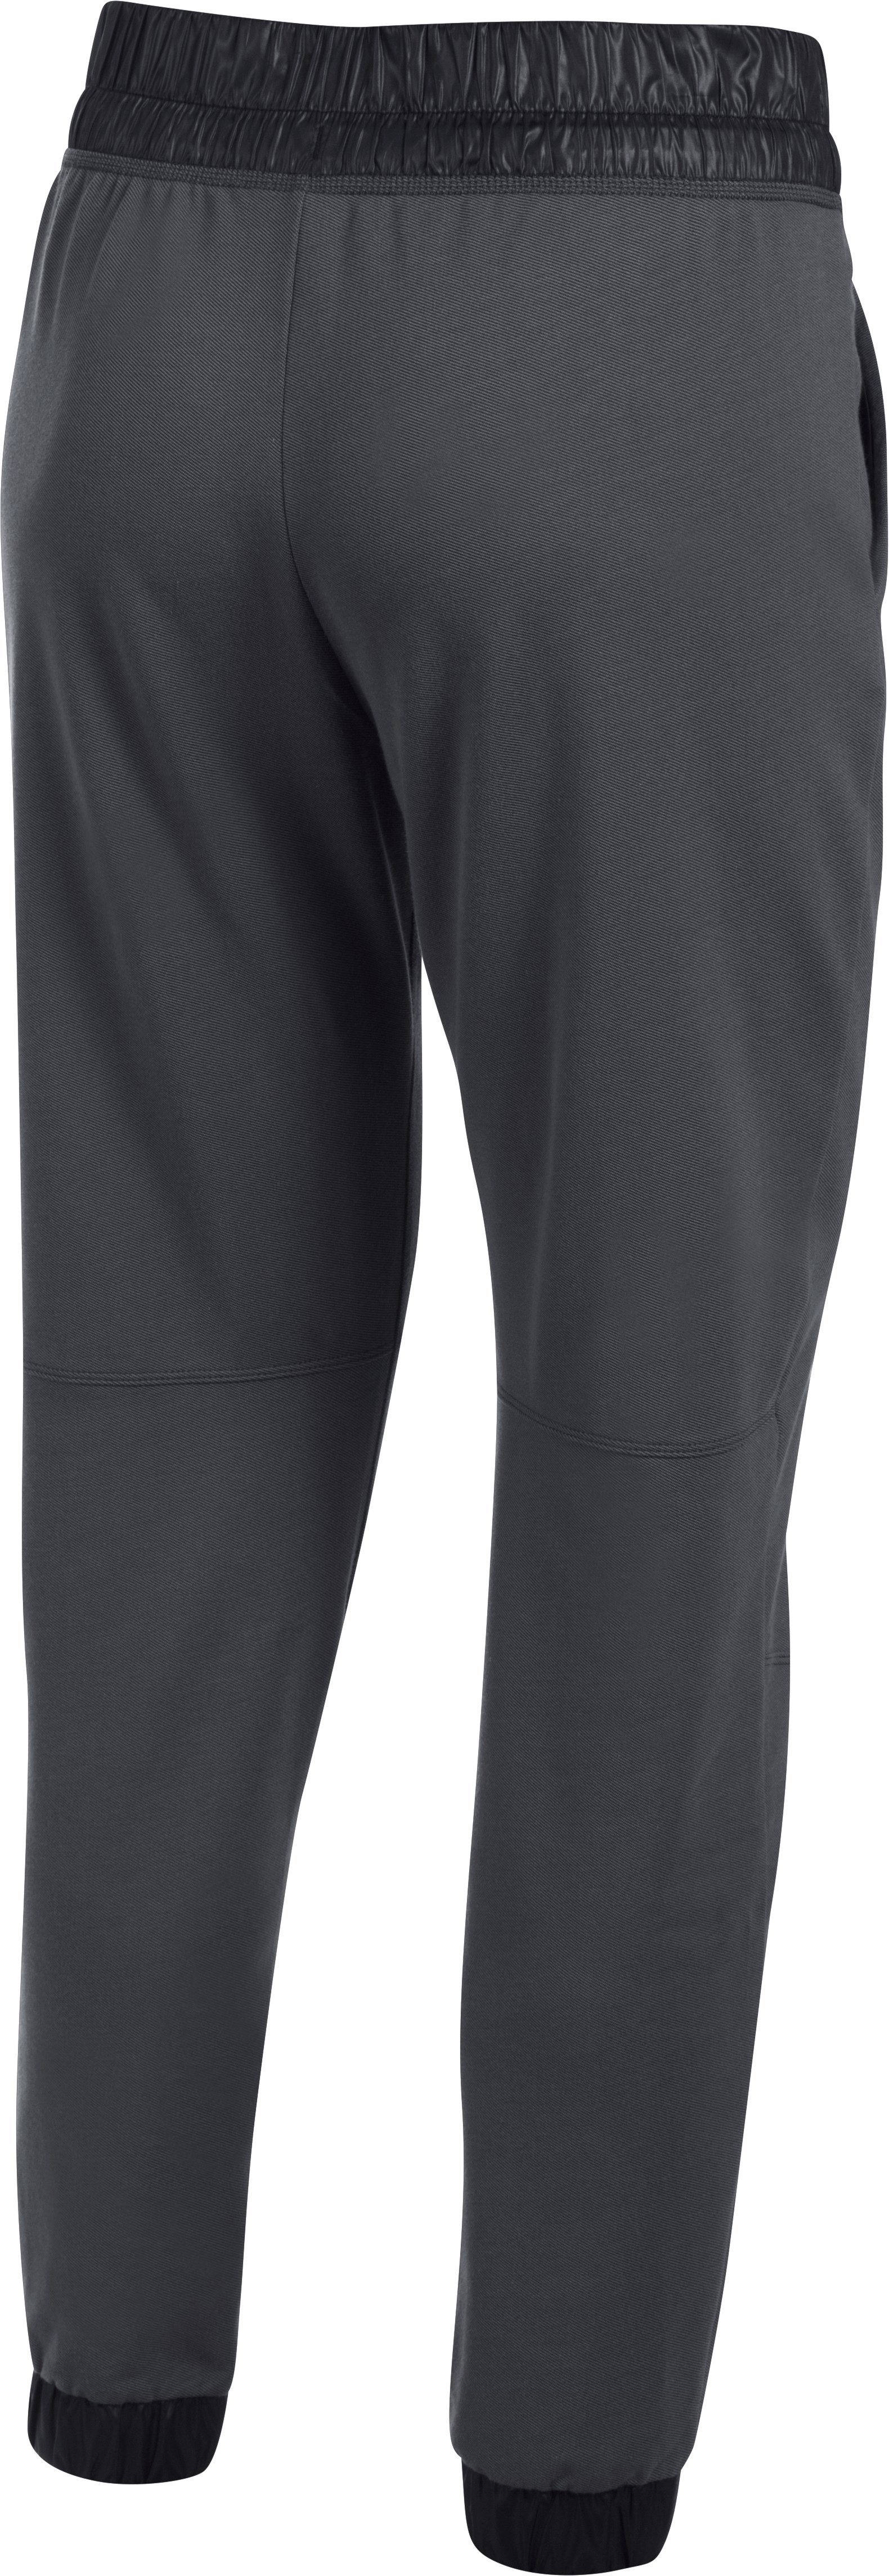 Women's UA Leisure Pants, ANTHRACITE, undefined